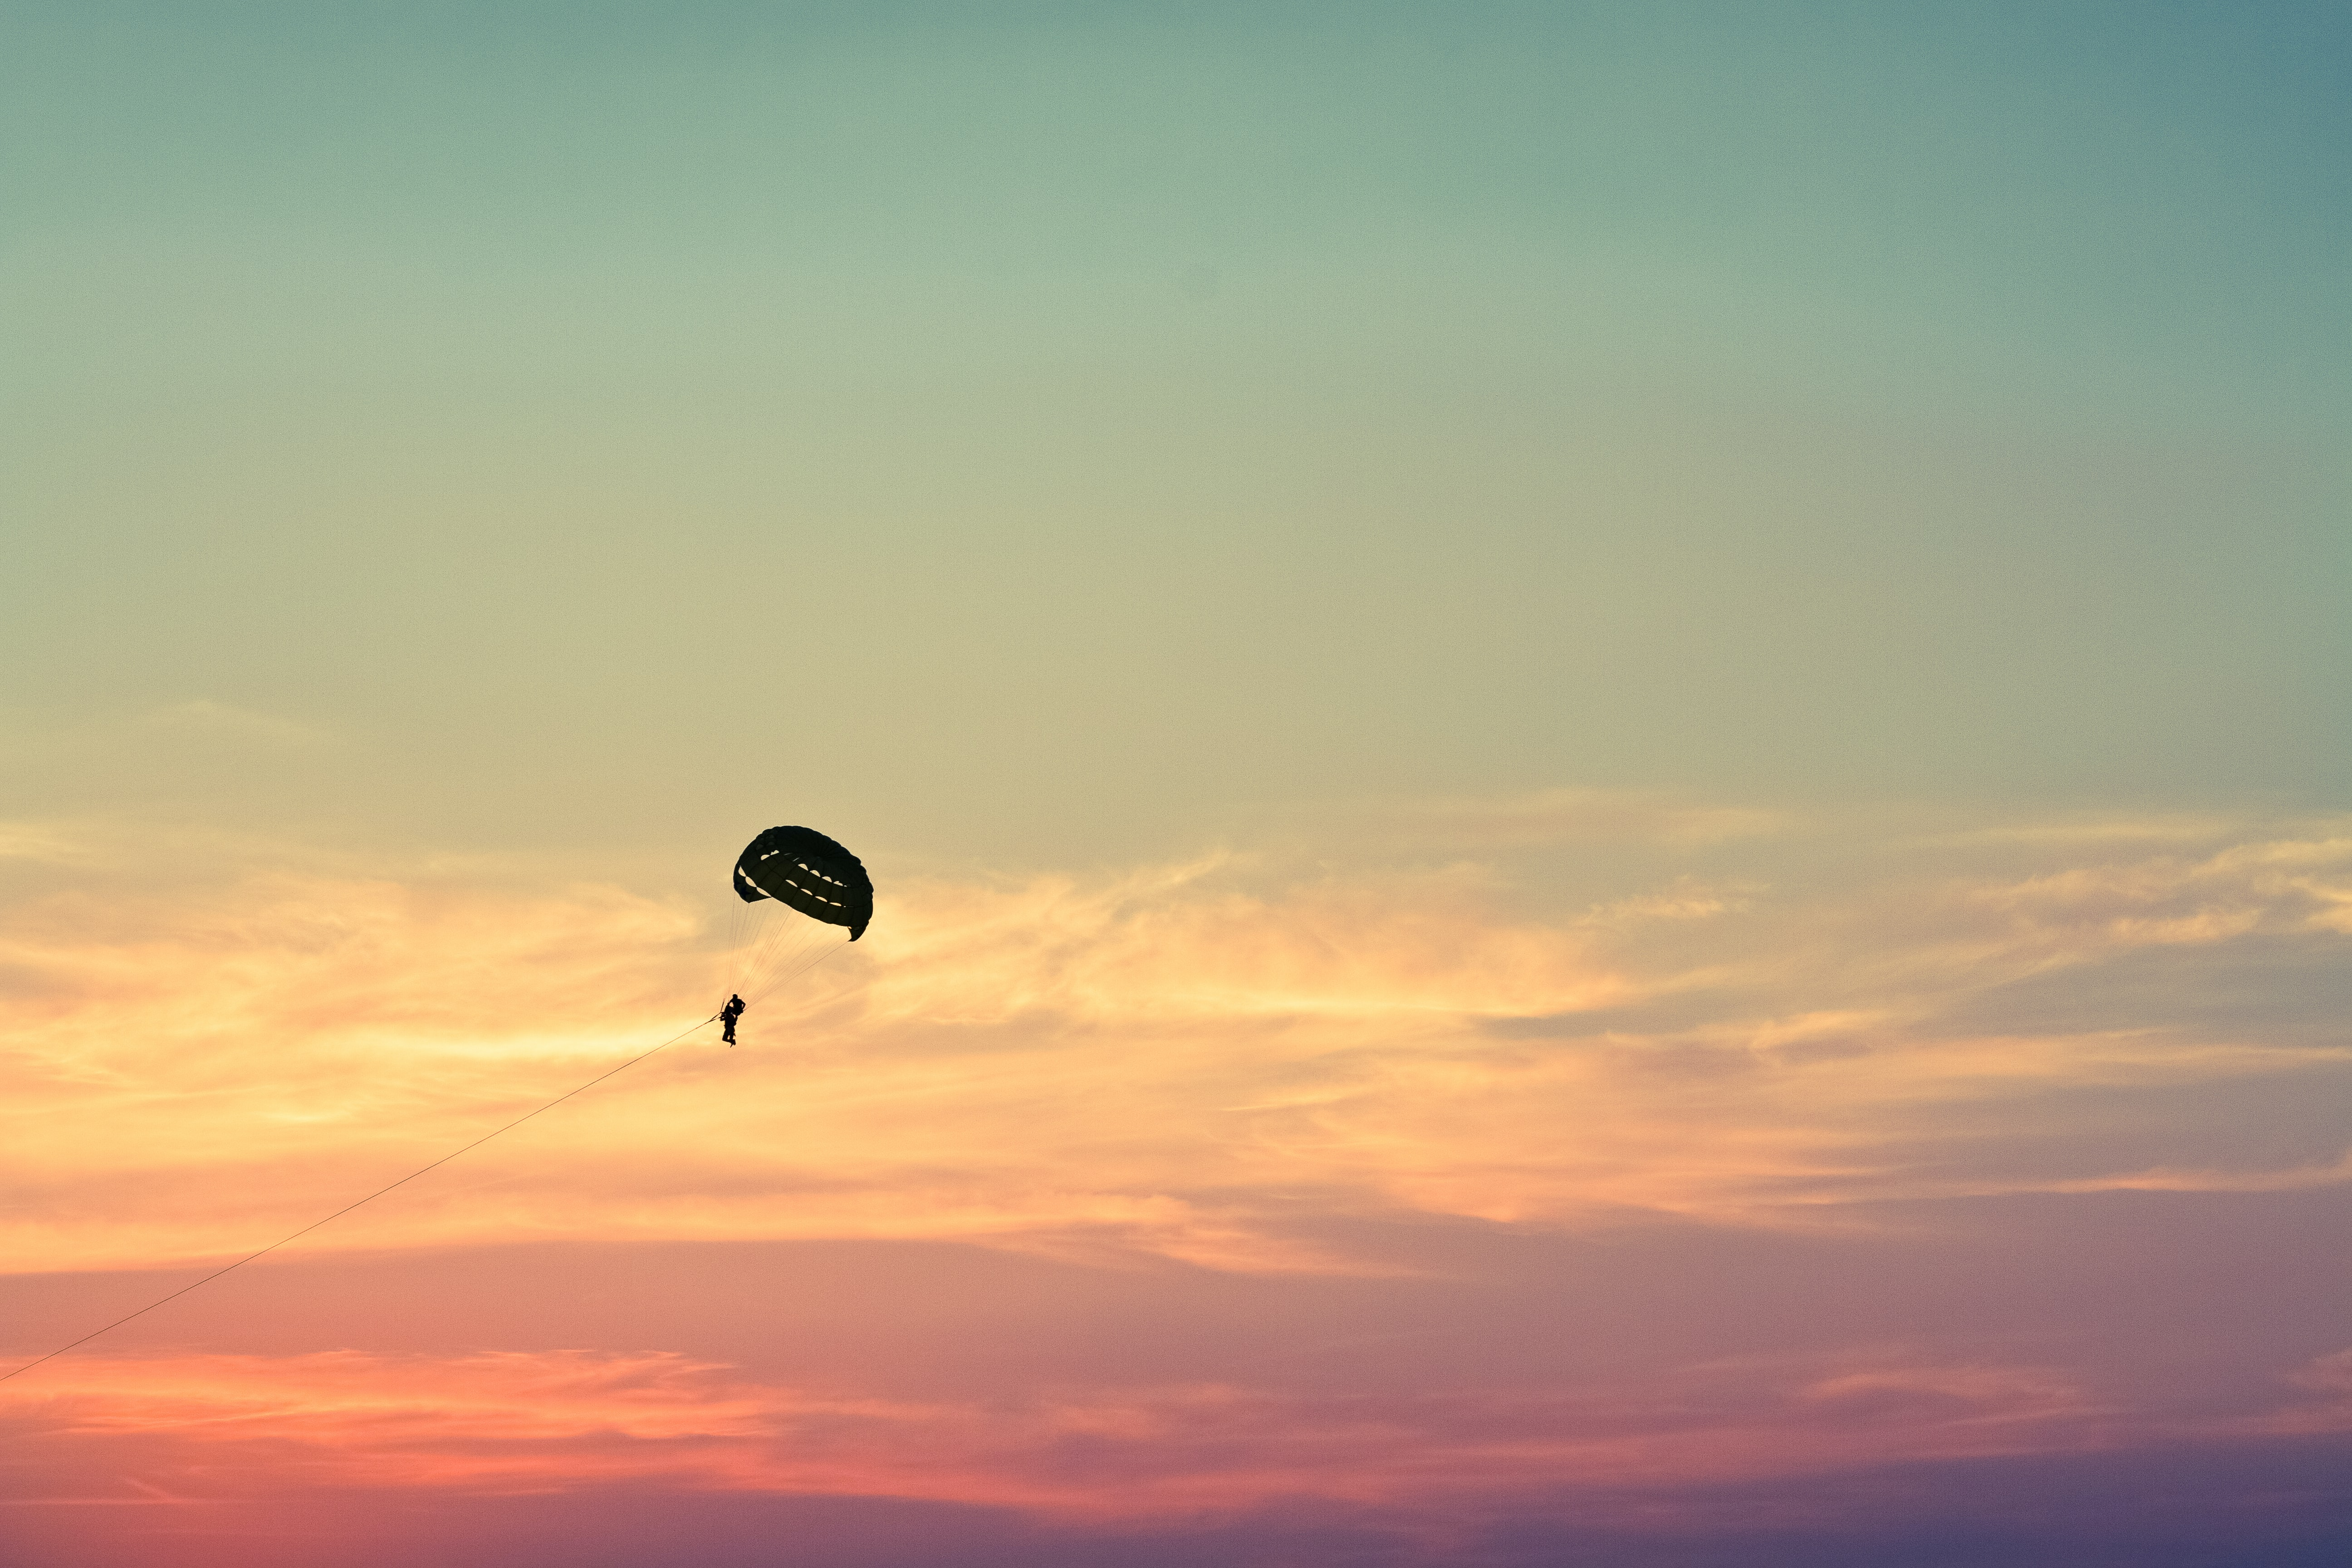 A silhouette of a paraglider in the sky during the golden hour